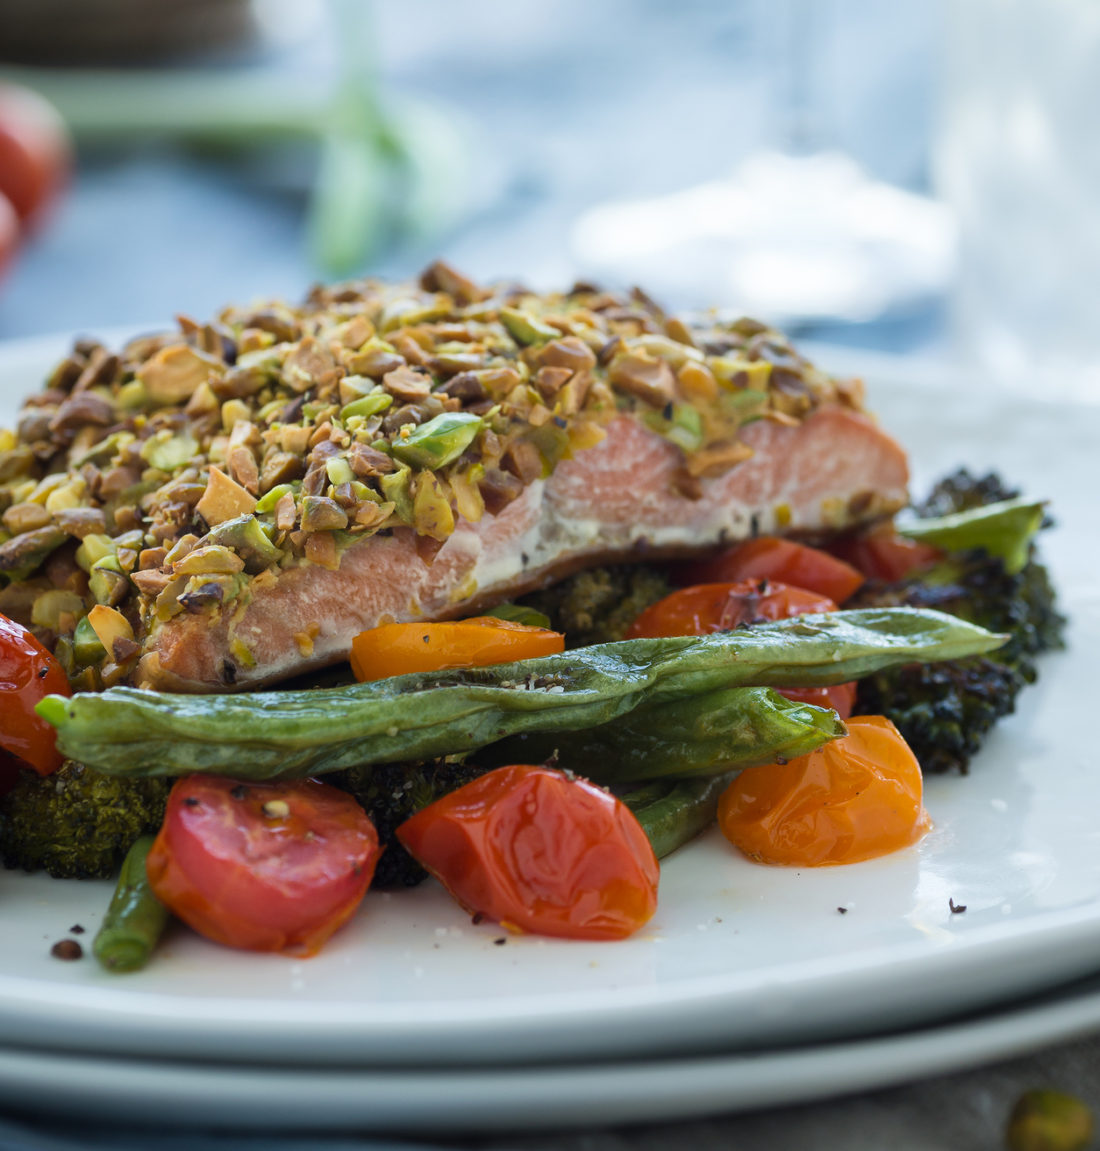 Roasted vegetables with baked pistachio wasabi crusted salmon ** Note: Shallow depth of field